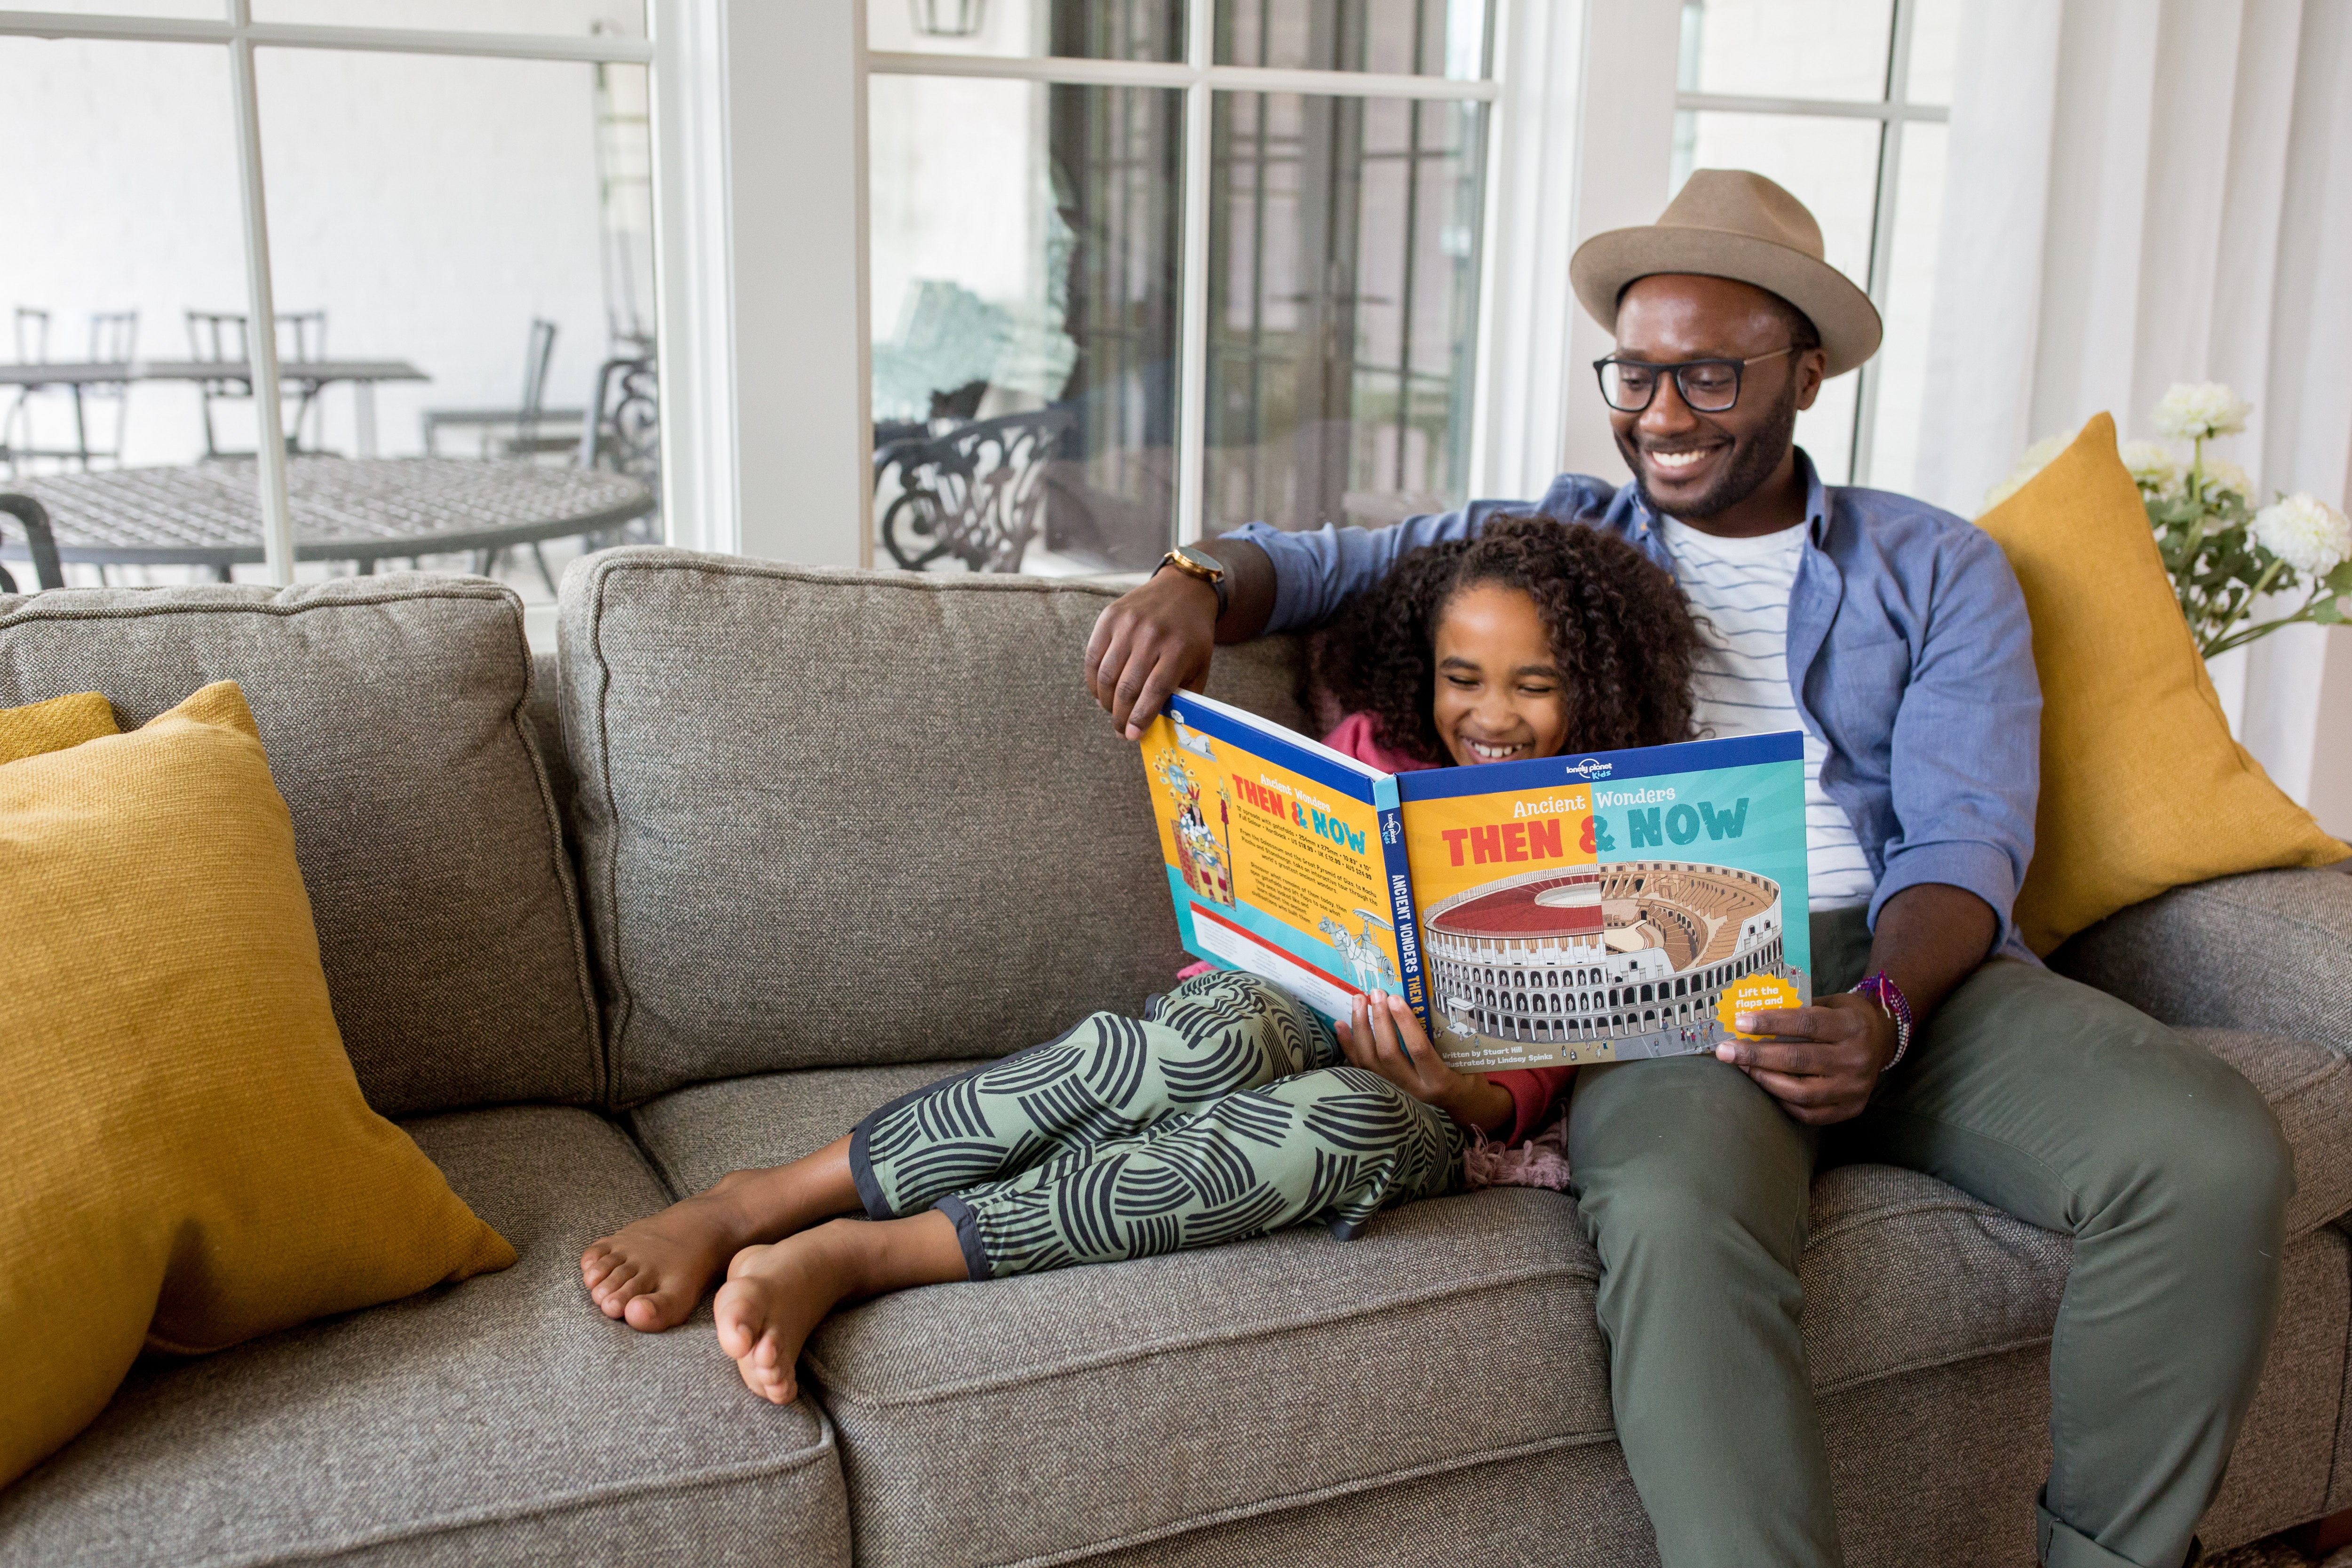 image of a father and daughter sitting on a couch and reading a book together